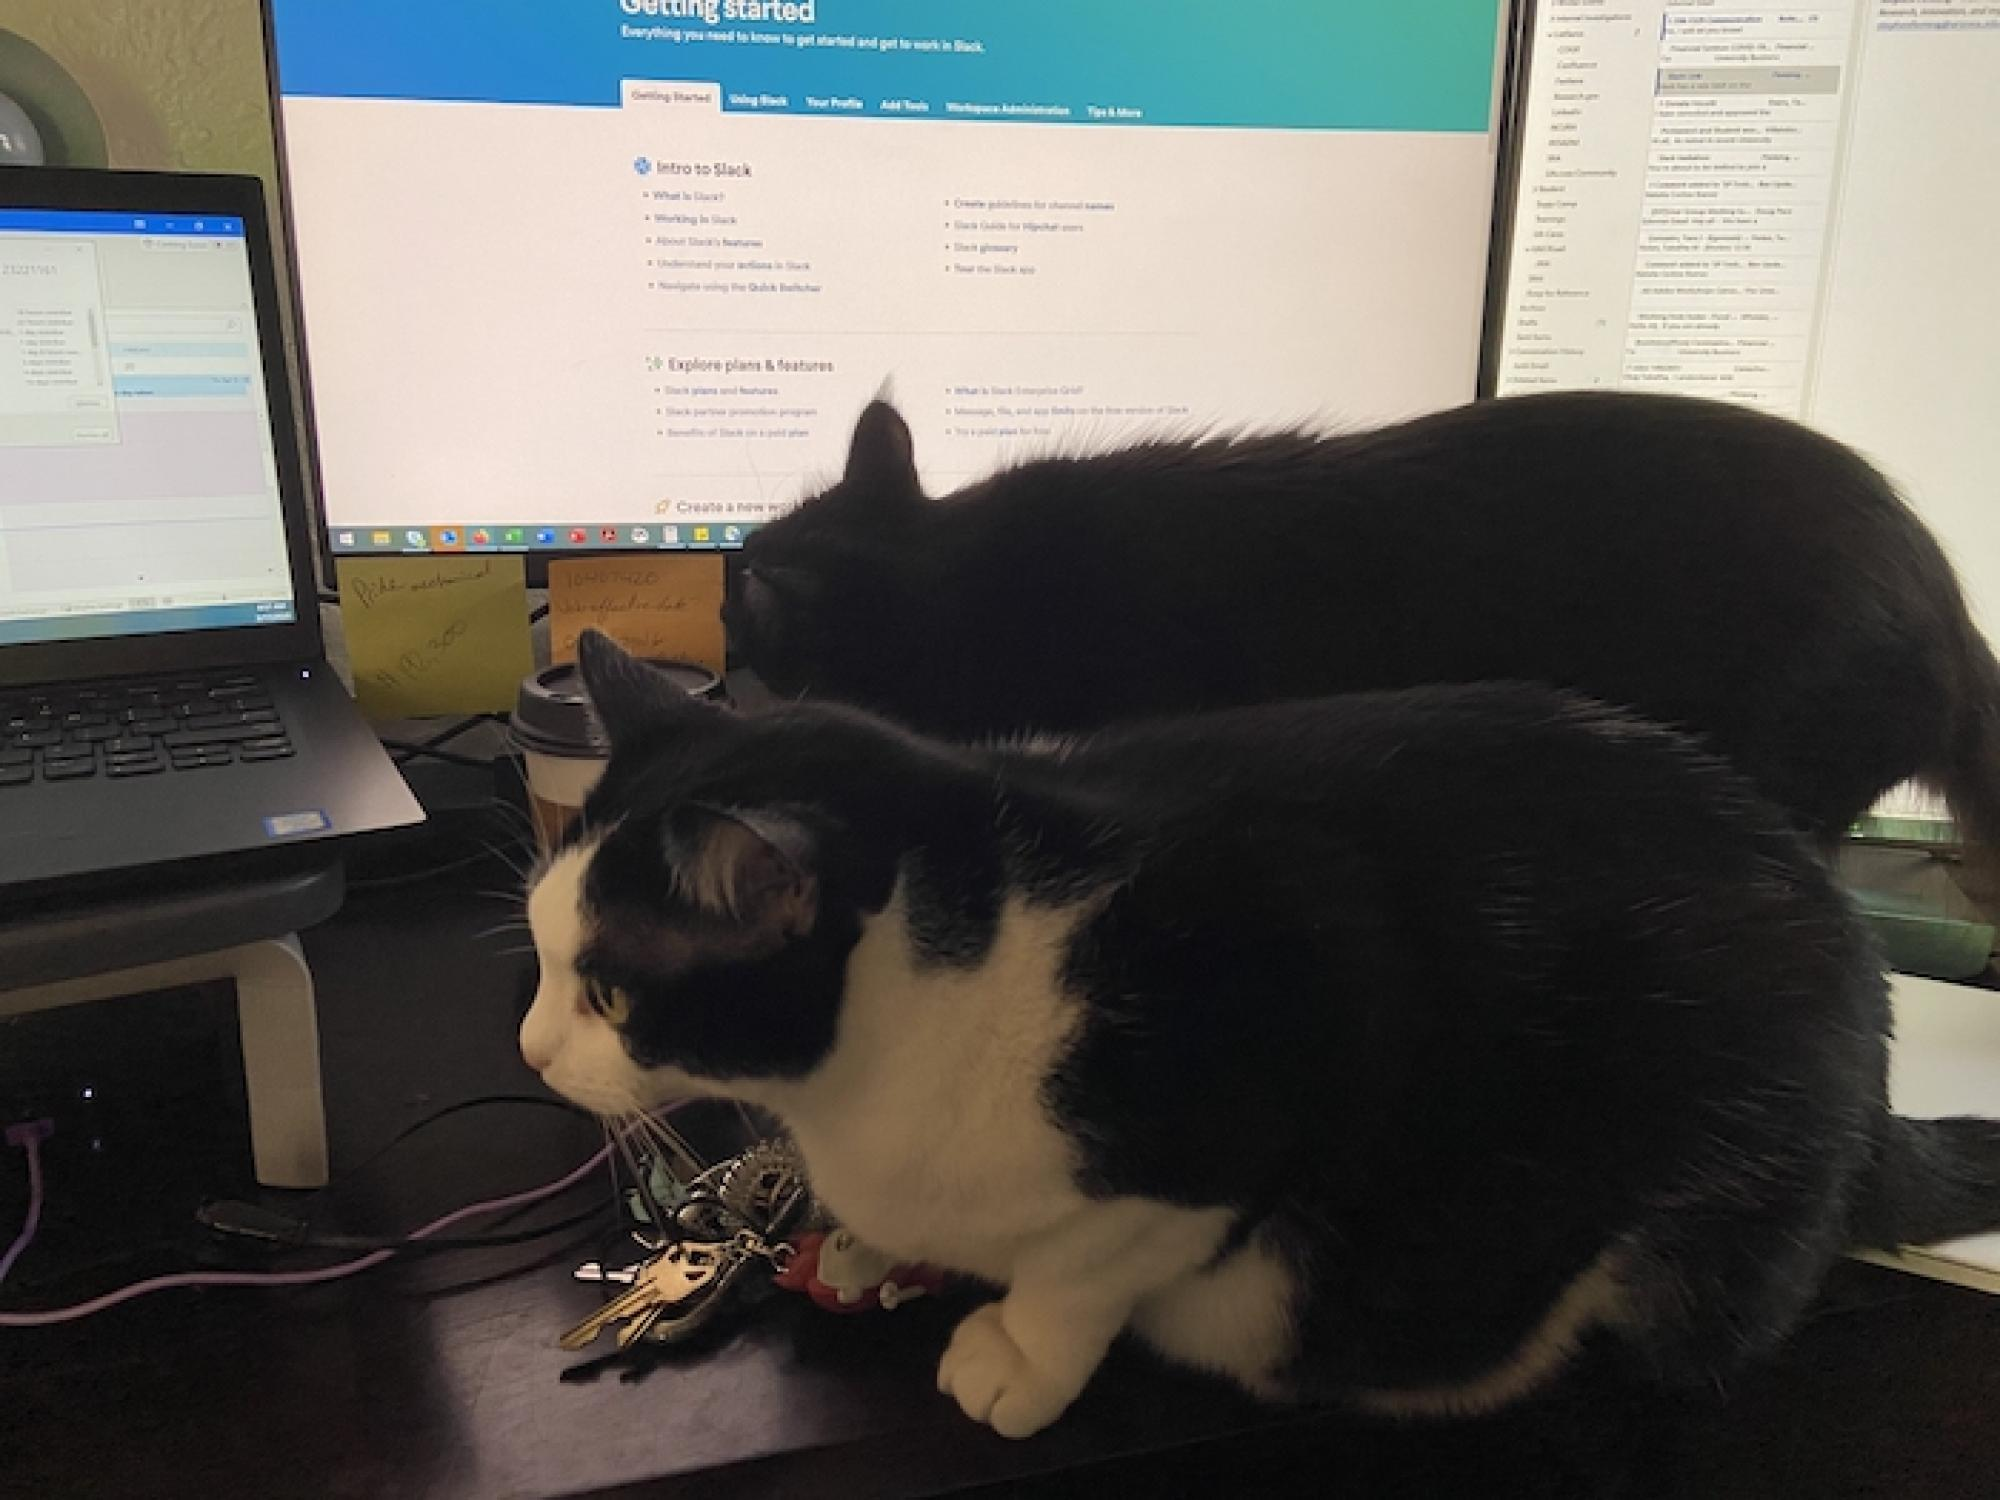 Max  shows Coco around the new desk setup and explains what can and cannot be knocked off the desk. – Tabatha Holan, principal sponsored projects administrator in Sponsored Projects and Contracting Services